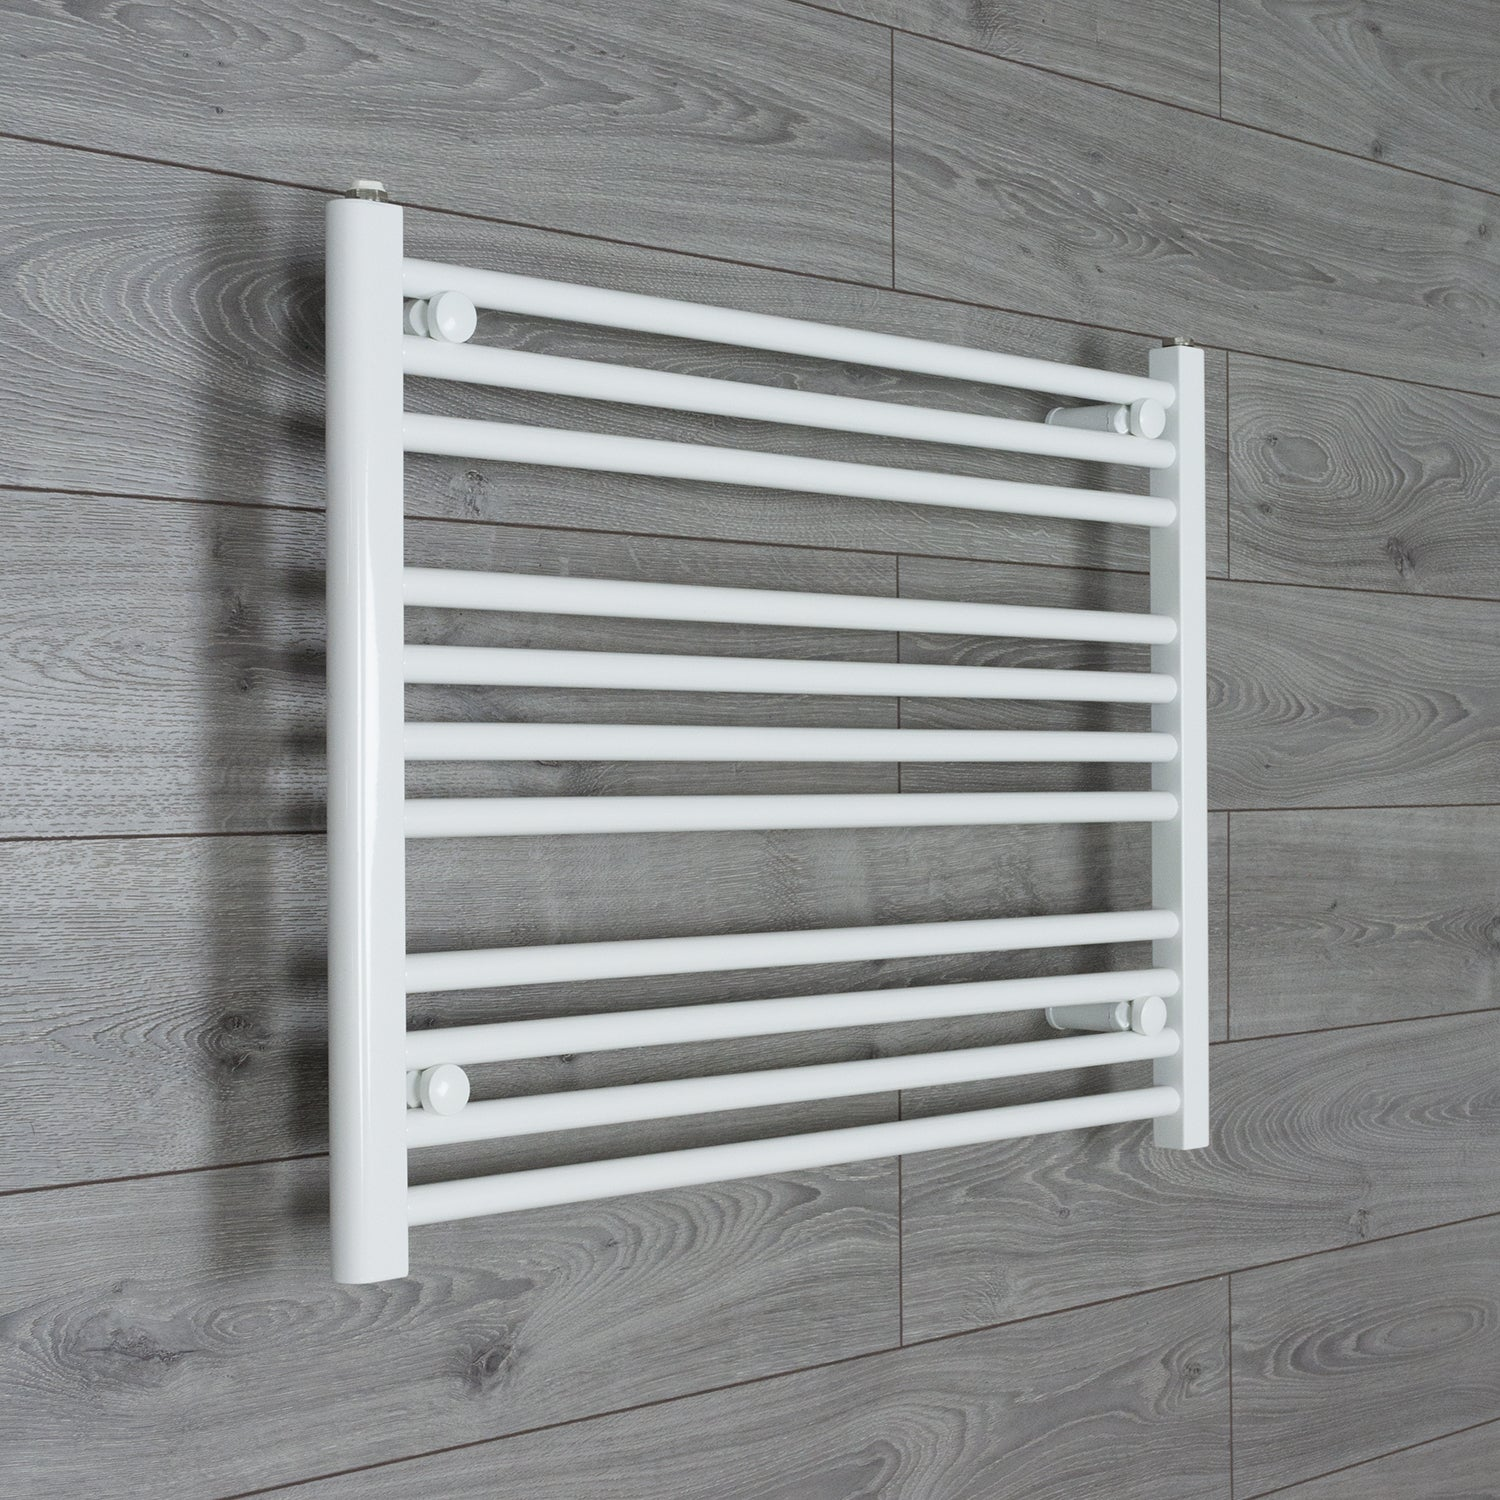 750mm Wide 600mm High Flat White Heated Towel Rail Radiator HTR,Towel Rail Only